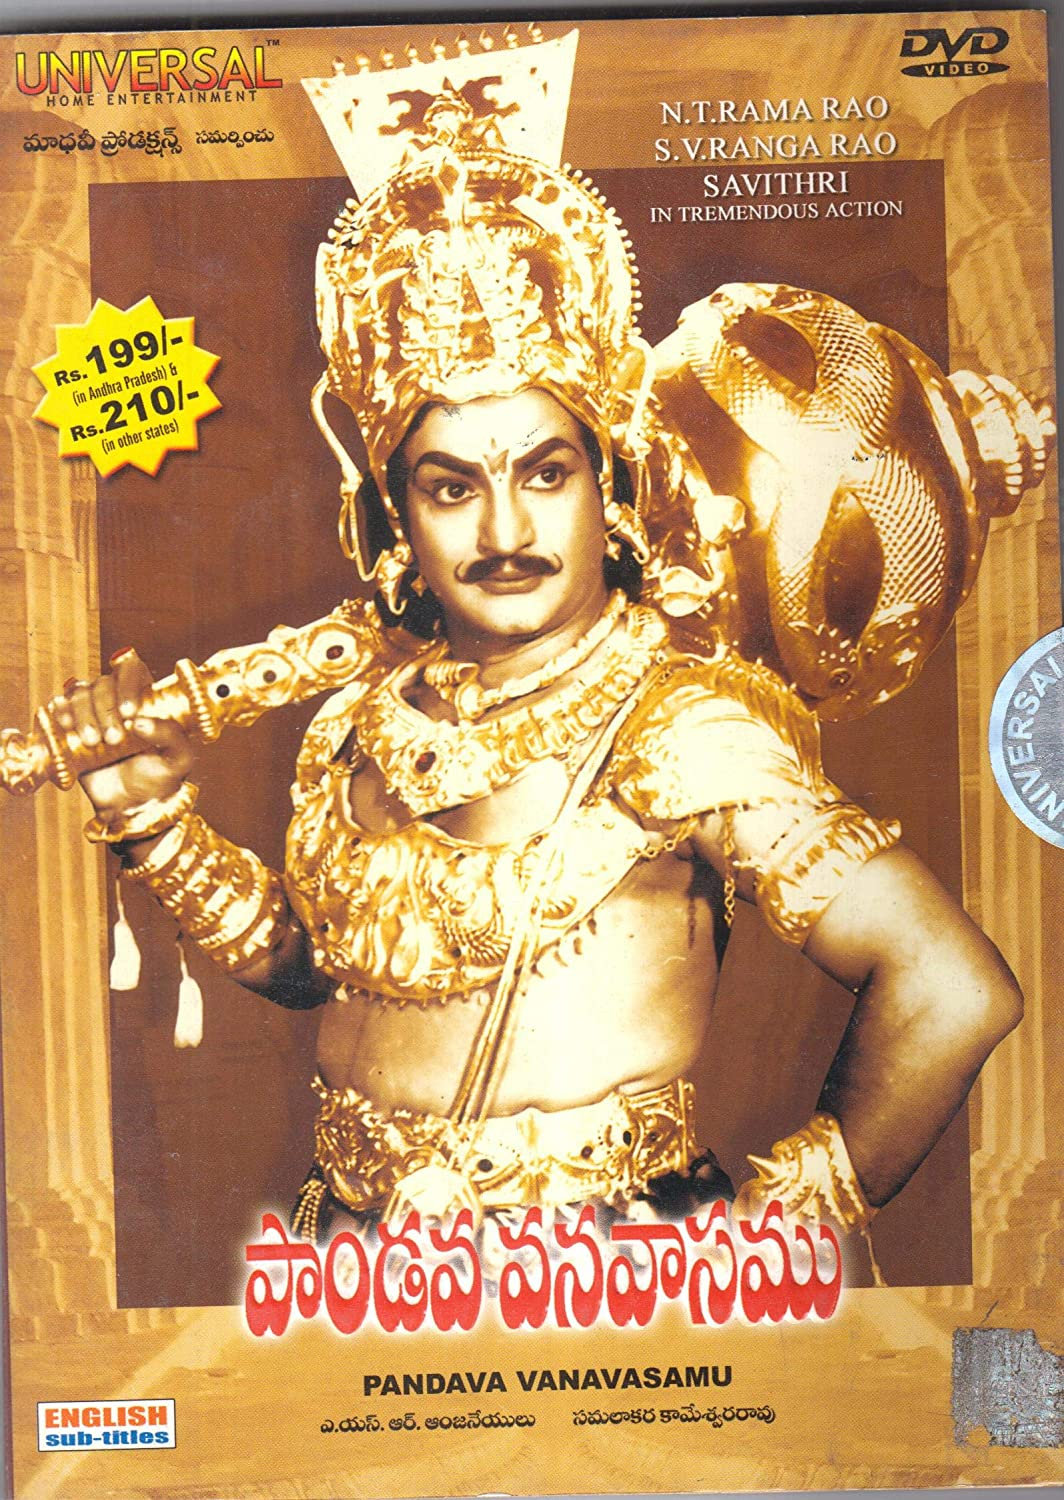 Amazon In Buy Pandava Vanavasamu ప డవ వనవ సమ Full Telugu Full Movie Dvd 1 Free Cd Dvd Blu Ray Online At Best Prices In India Movies Tv Shows